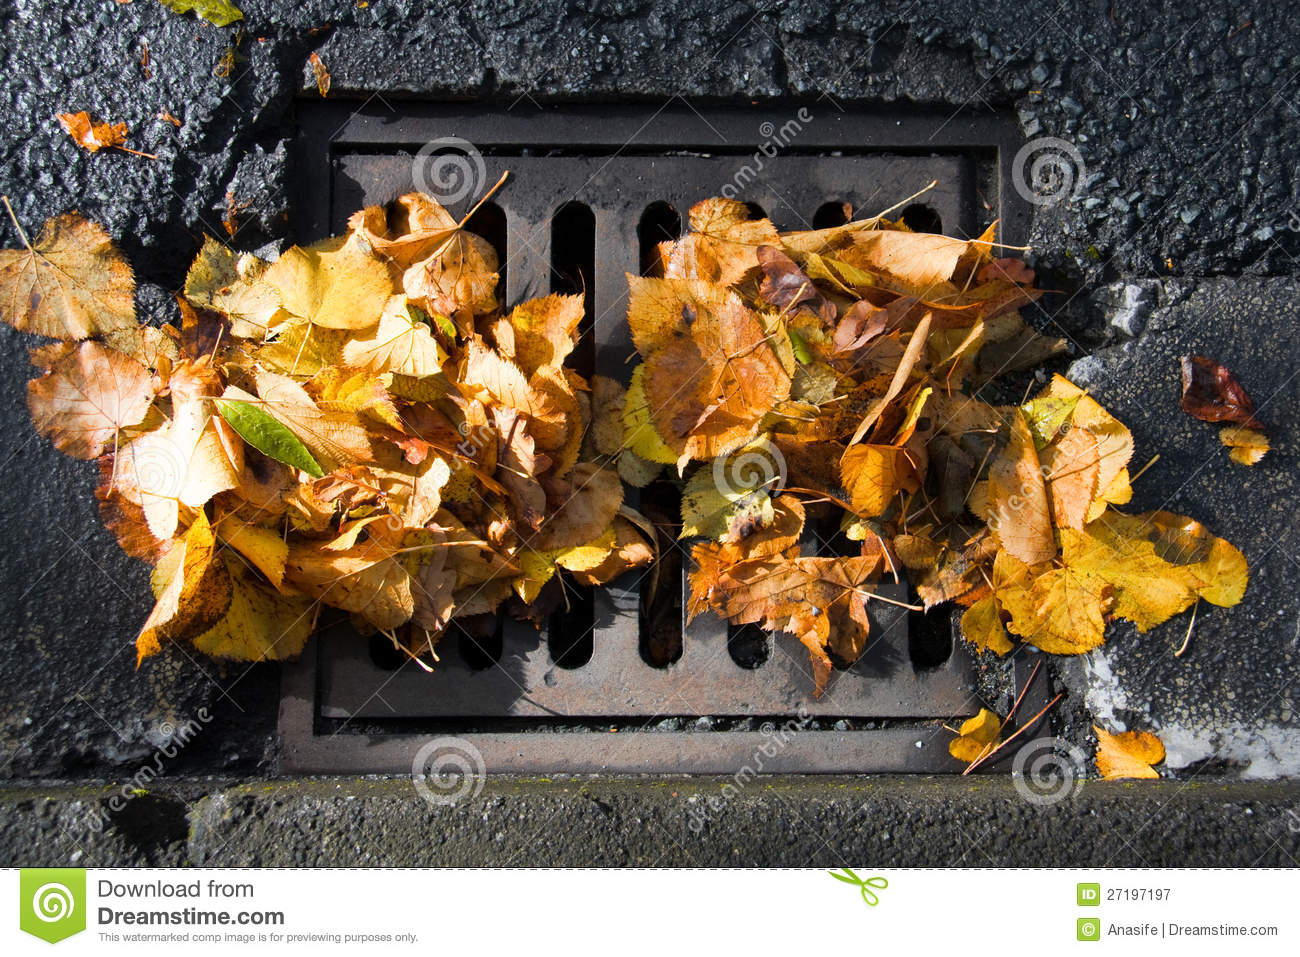 Sewer clogged with fallen leaves